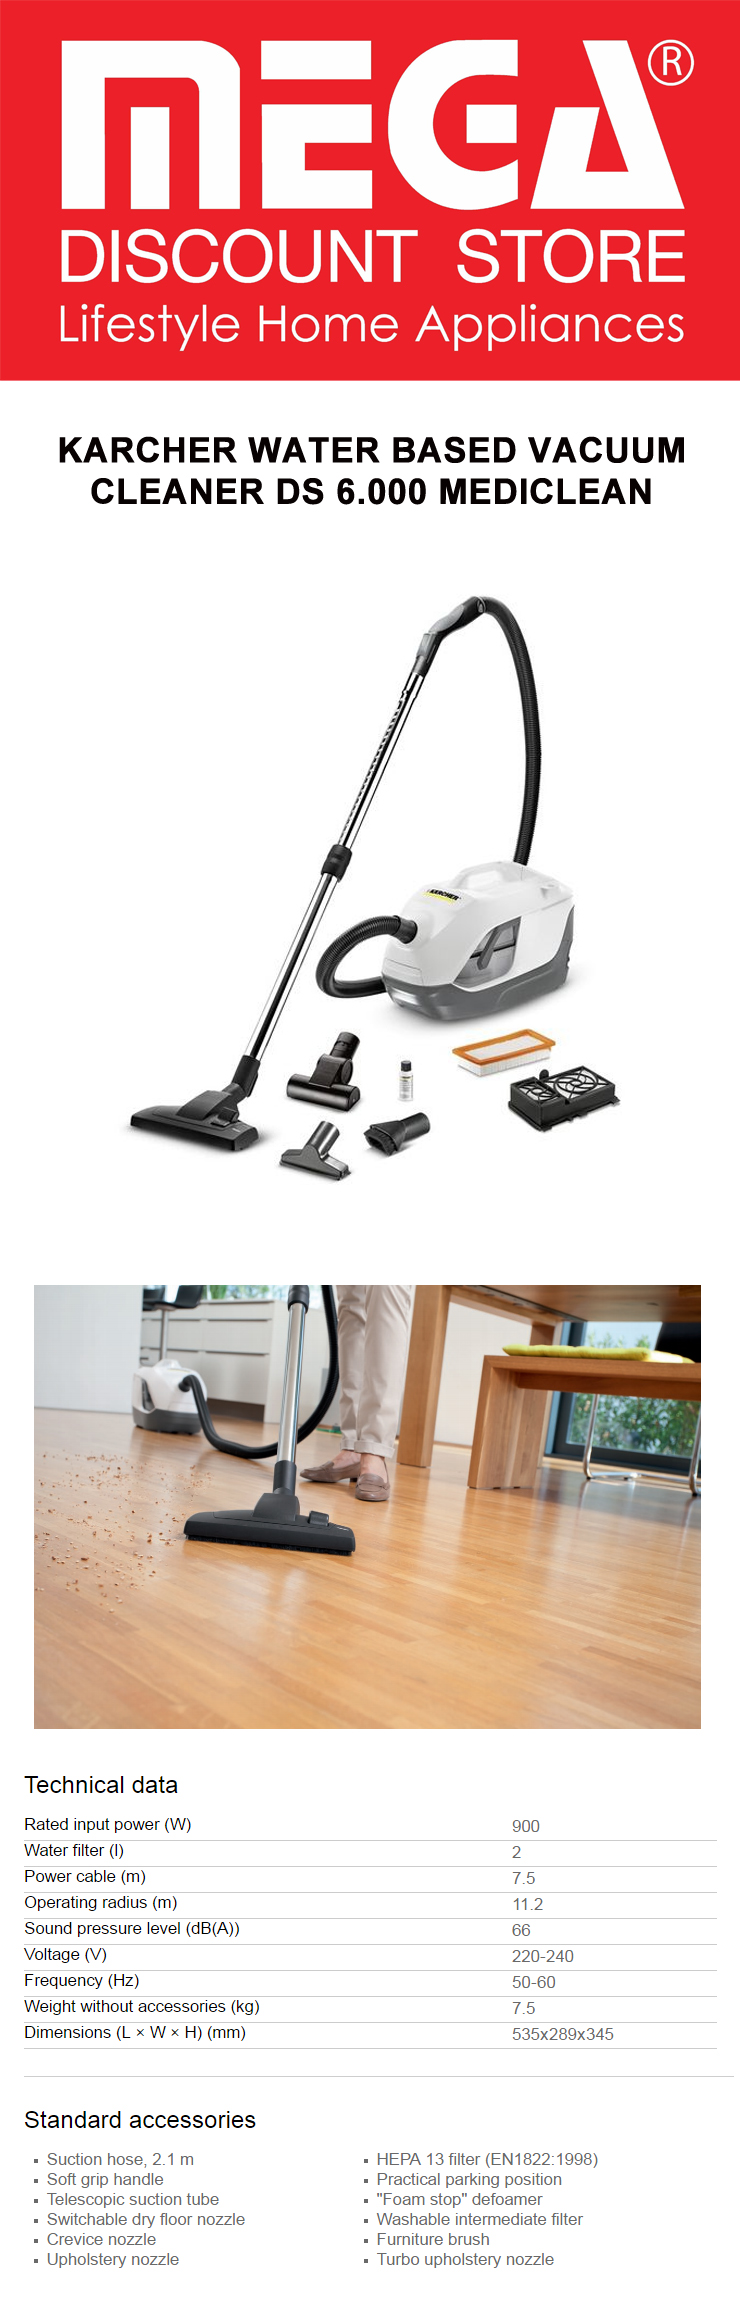 karcher water based vacuum cleaner ds 6.000 mediclean – rely